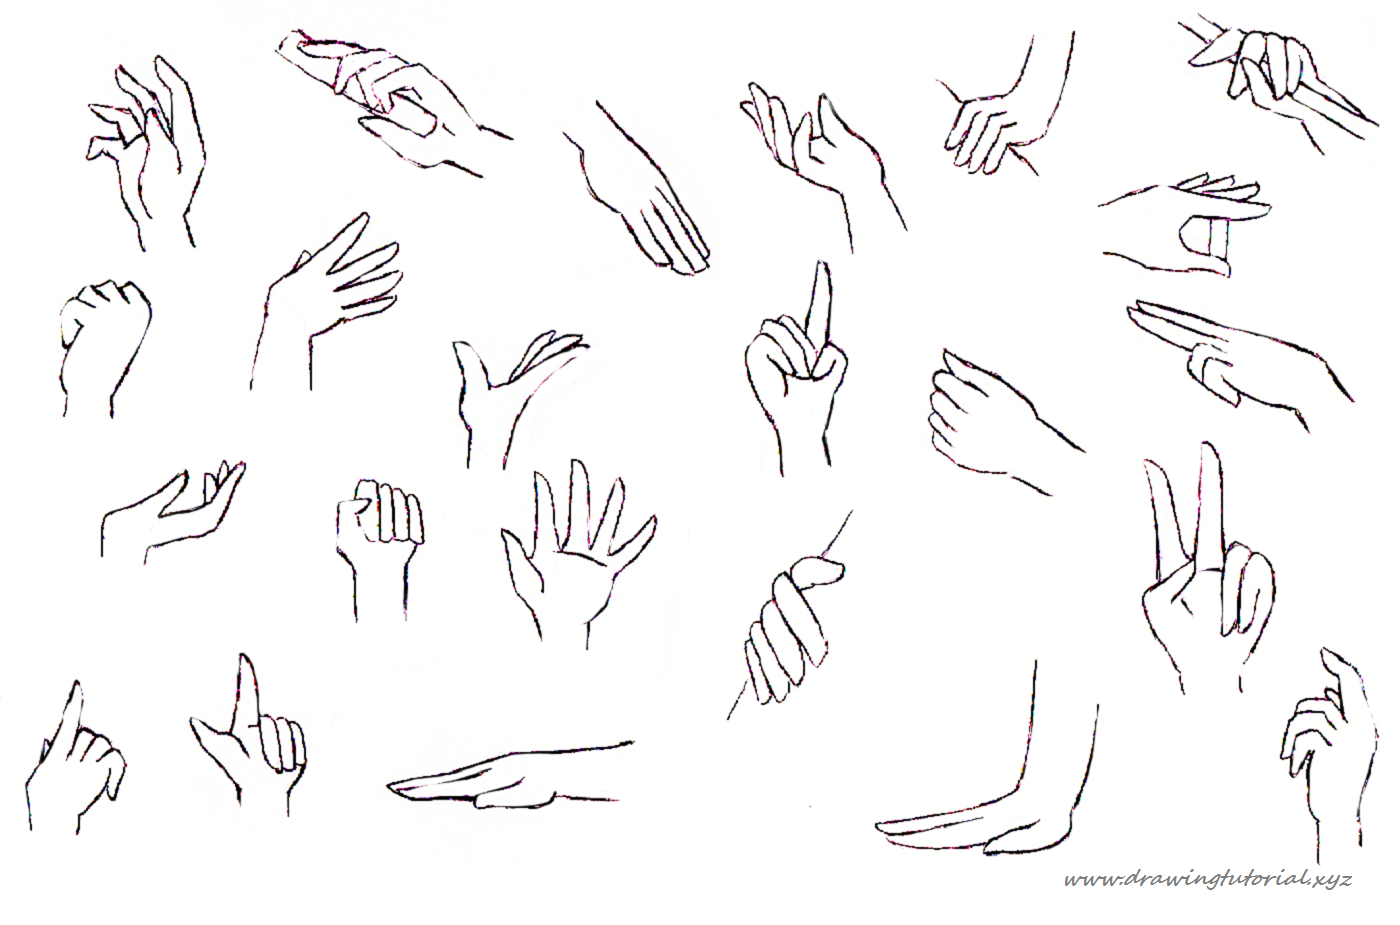 Scribble Drawing Anime : How to draw anime hands holding something